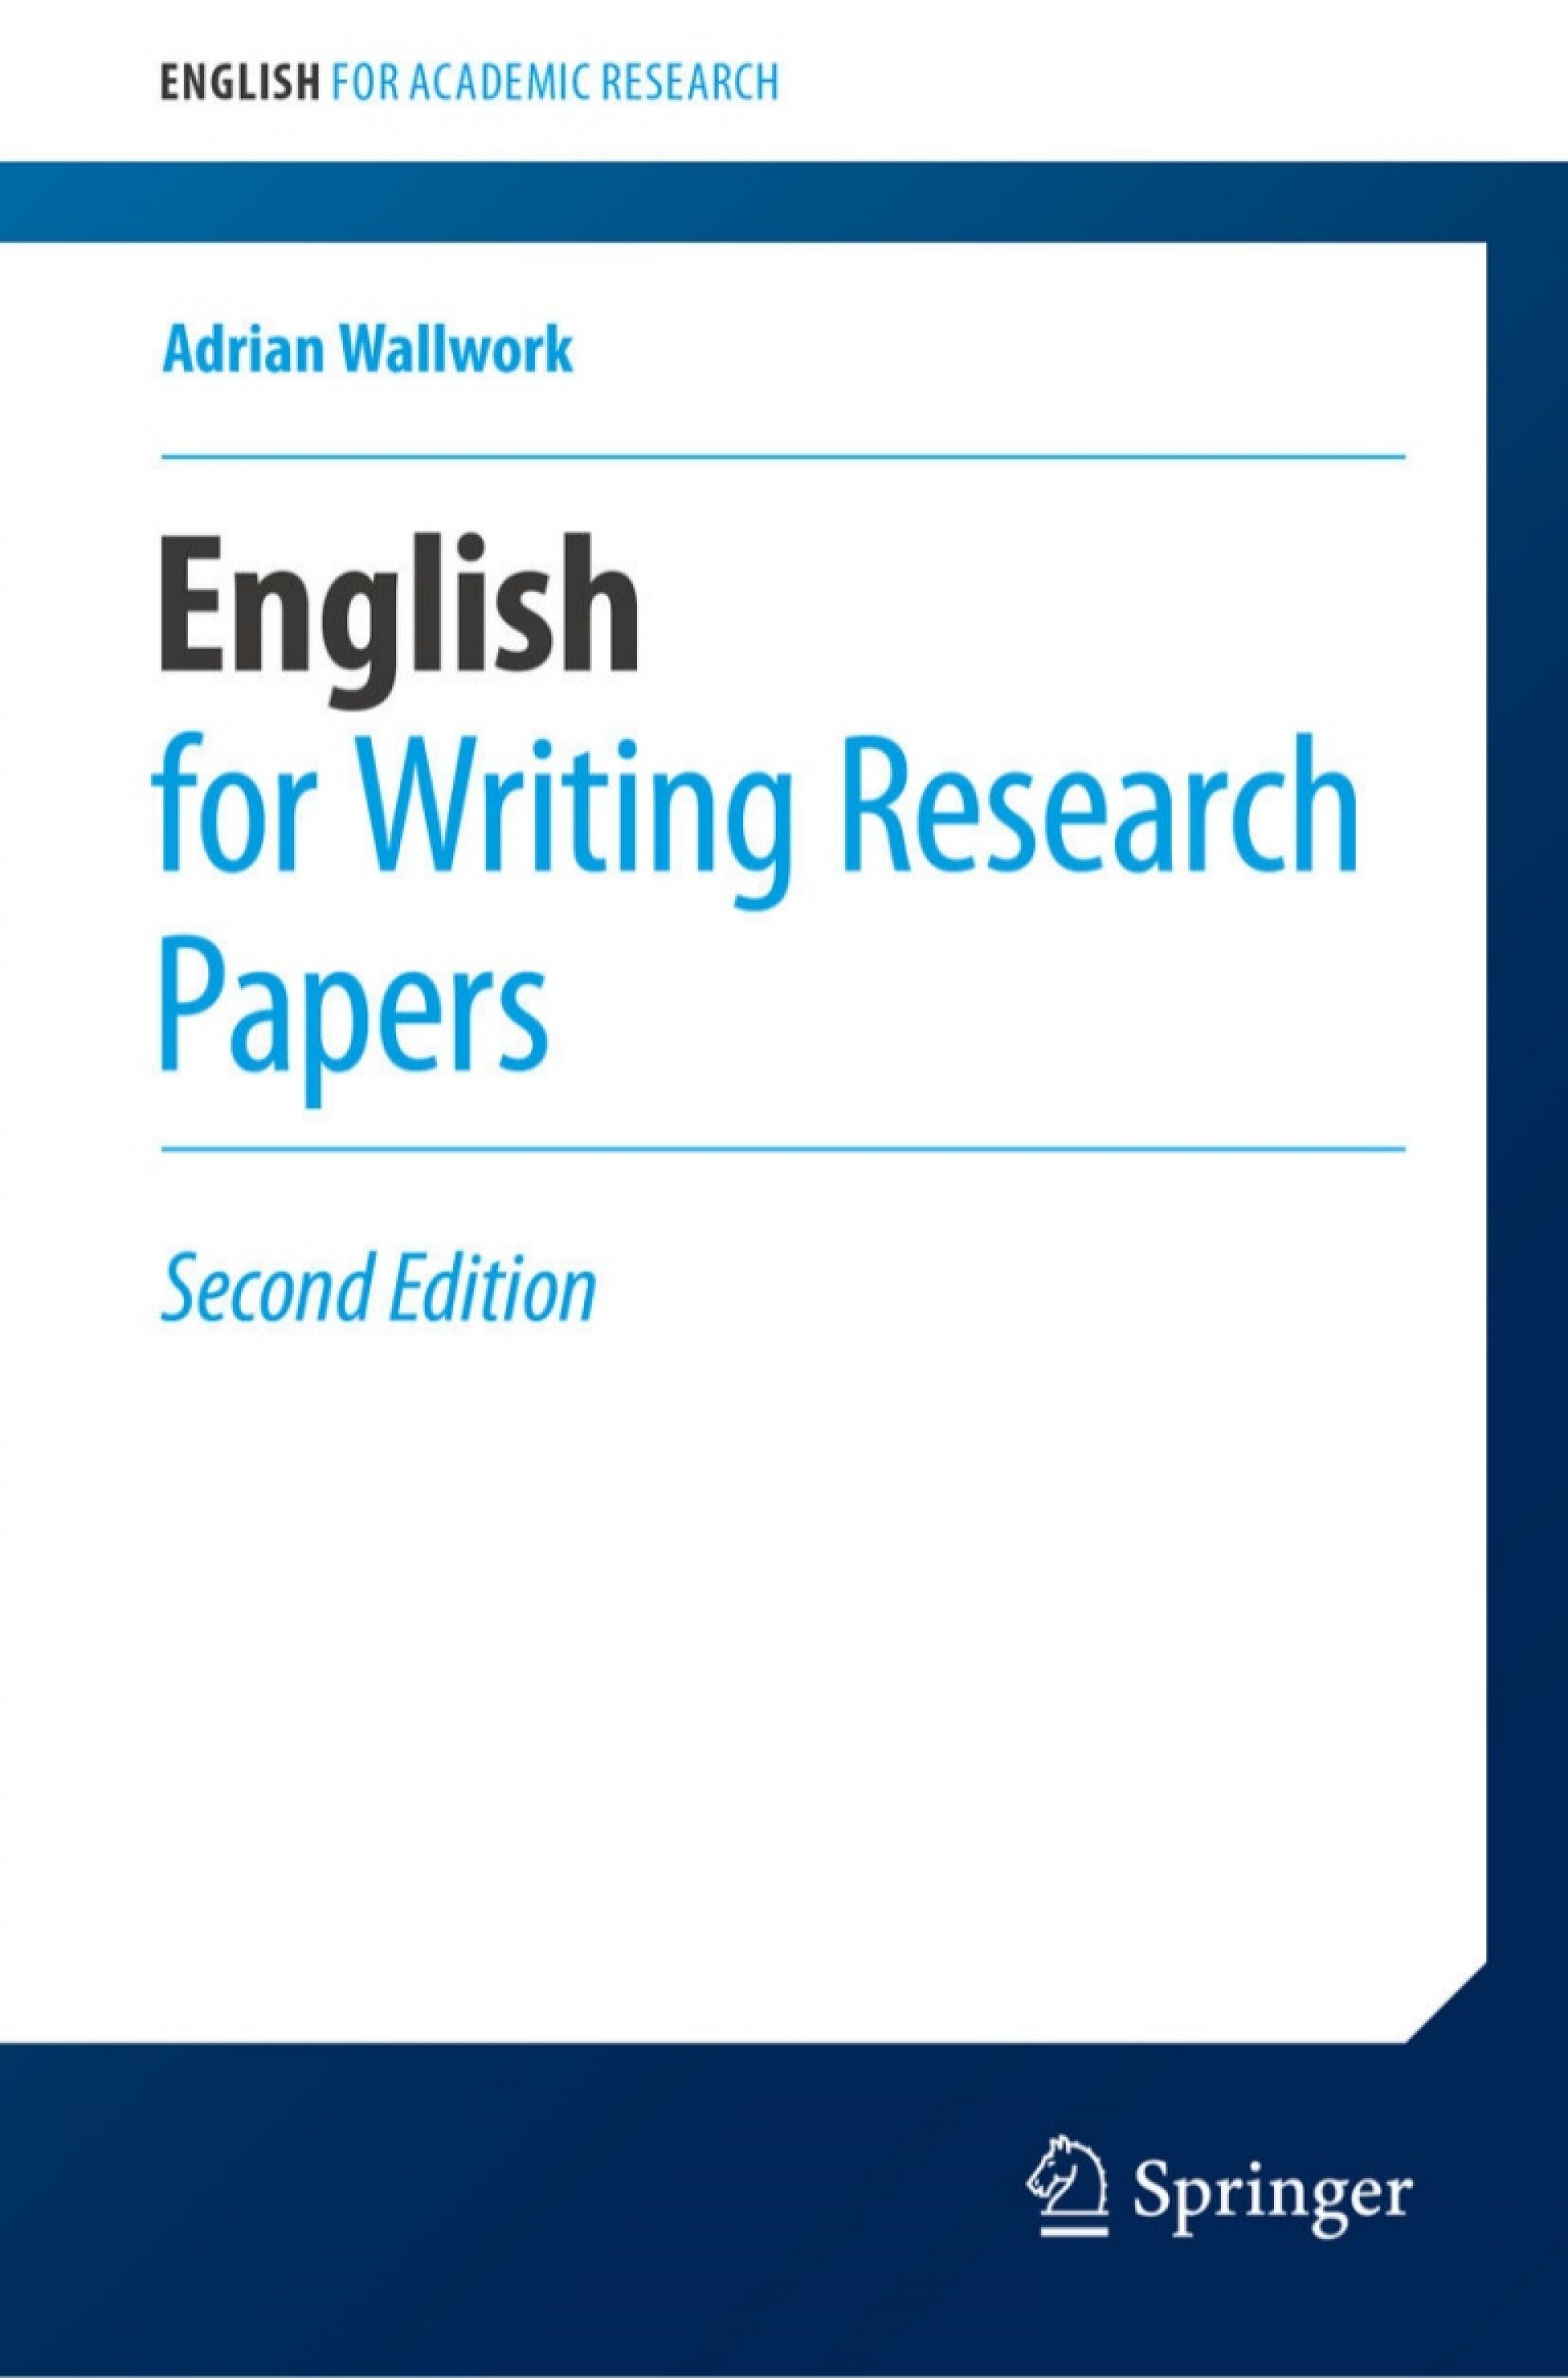 003 Englishforwritingresearchpapersbyadrianwallwork Thumbnail English For Writing Researchs Springer Awesome Research Papers Pdf Useful Phrases - 1920